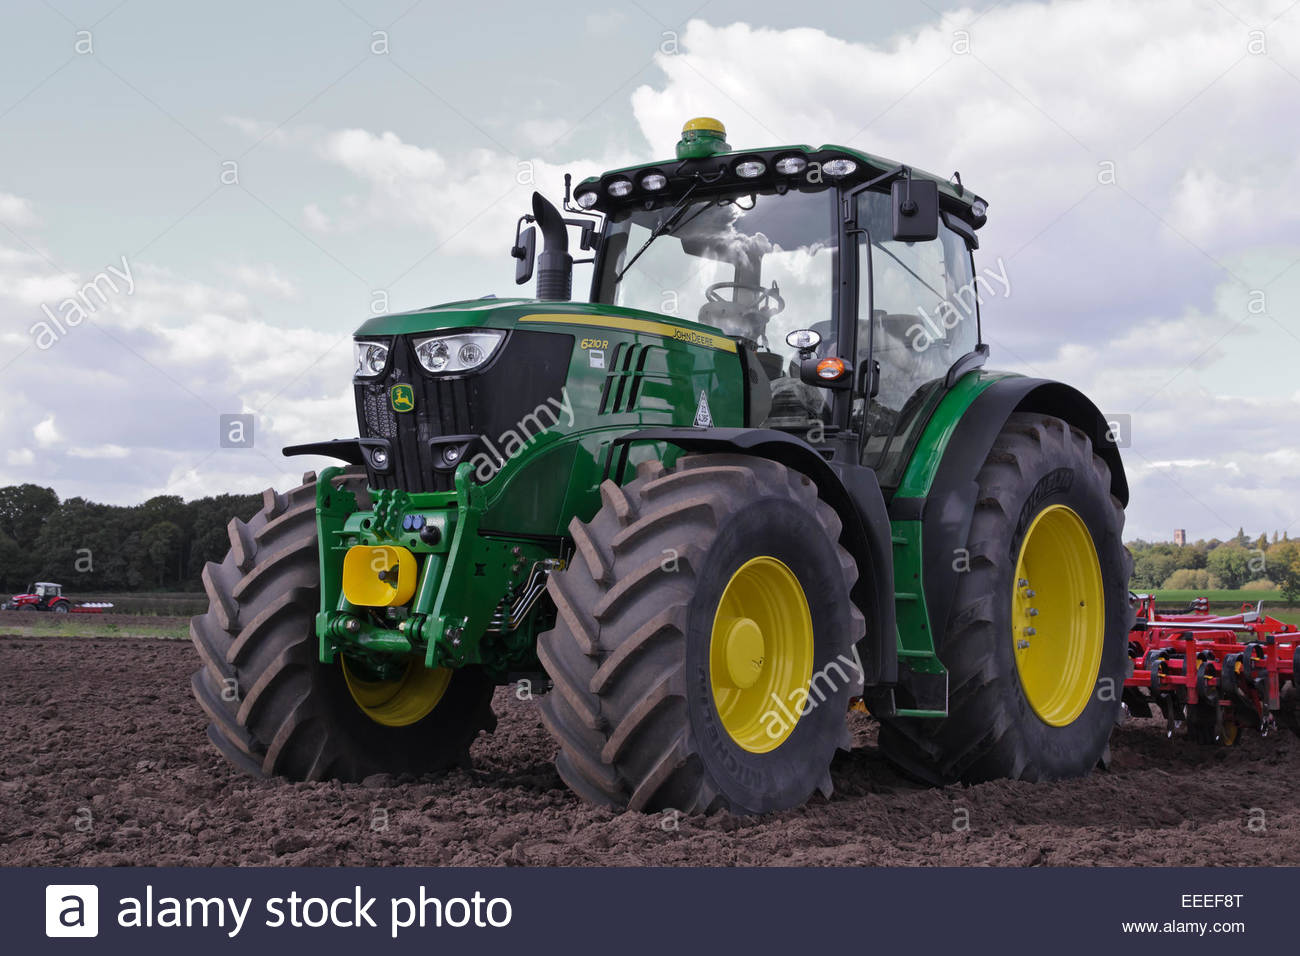 big john deere 6210r tractor with soil cultivator Stock ...